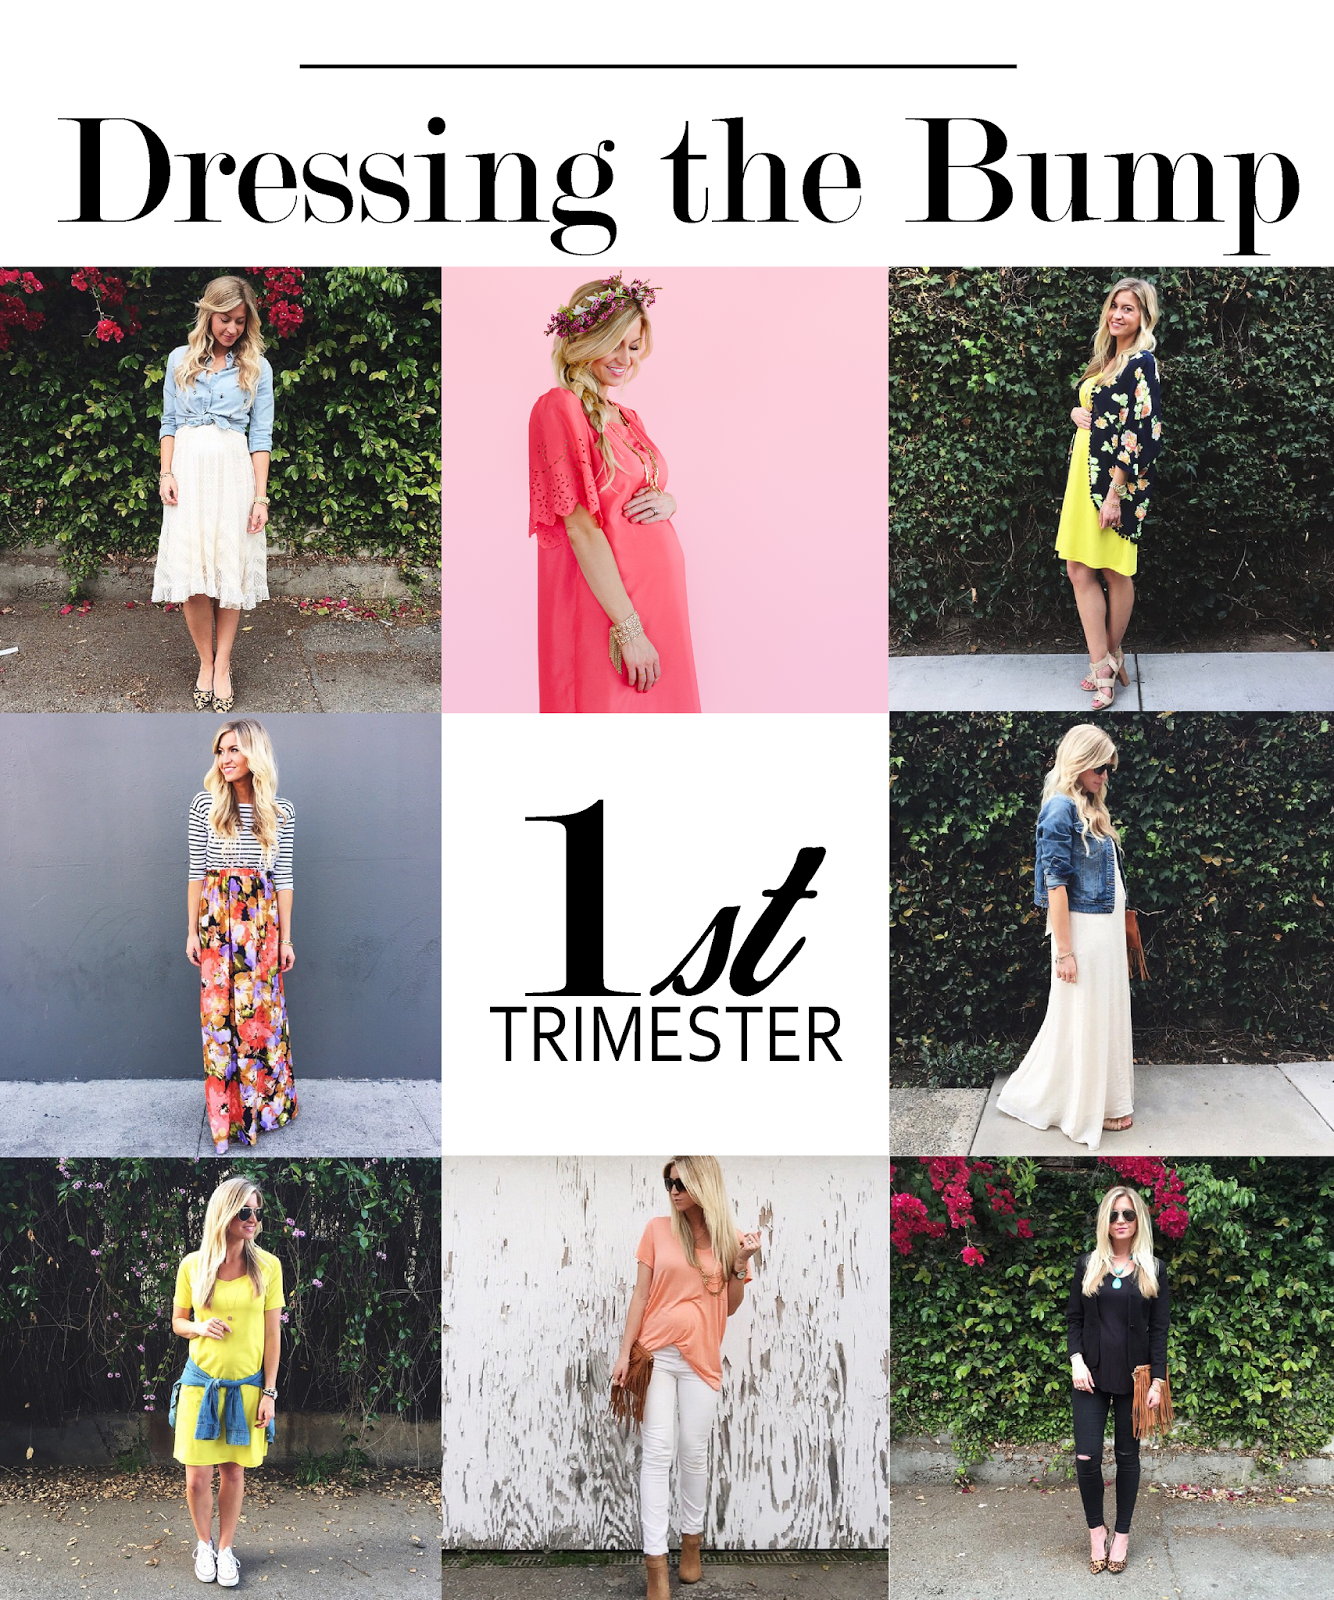 a9b2c048b6bba Dressing the Bump Series: What to wear during the first trimester of  pregnancy.